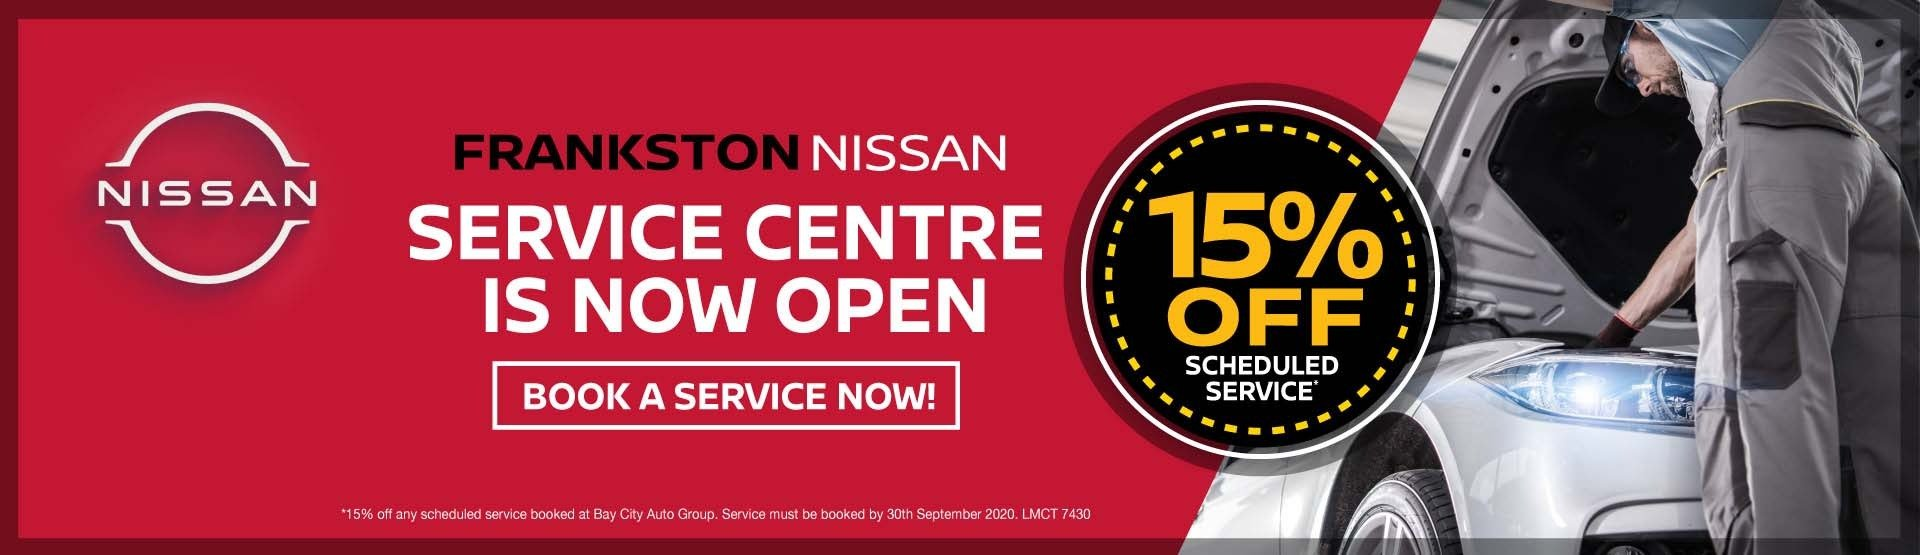 Frankston Nissan - Service is open